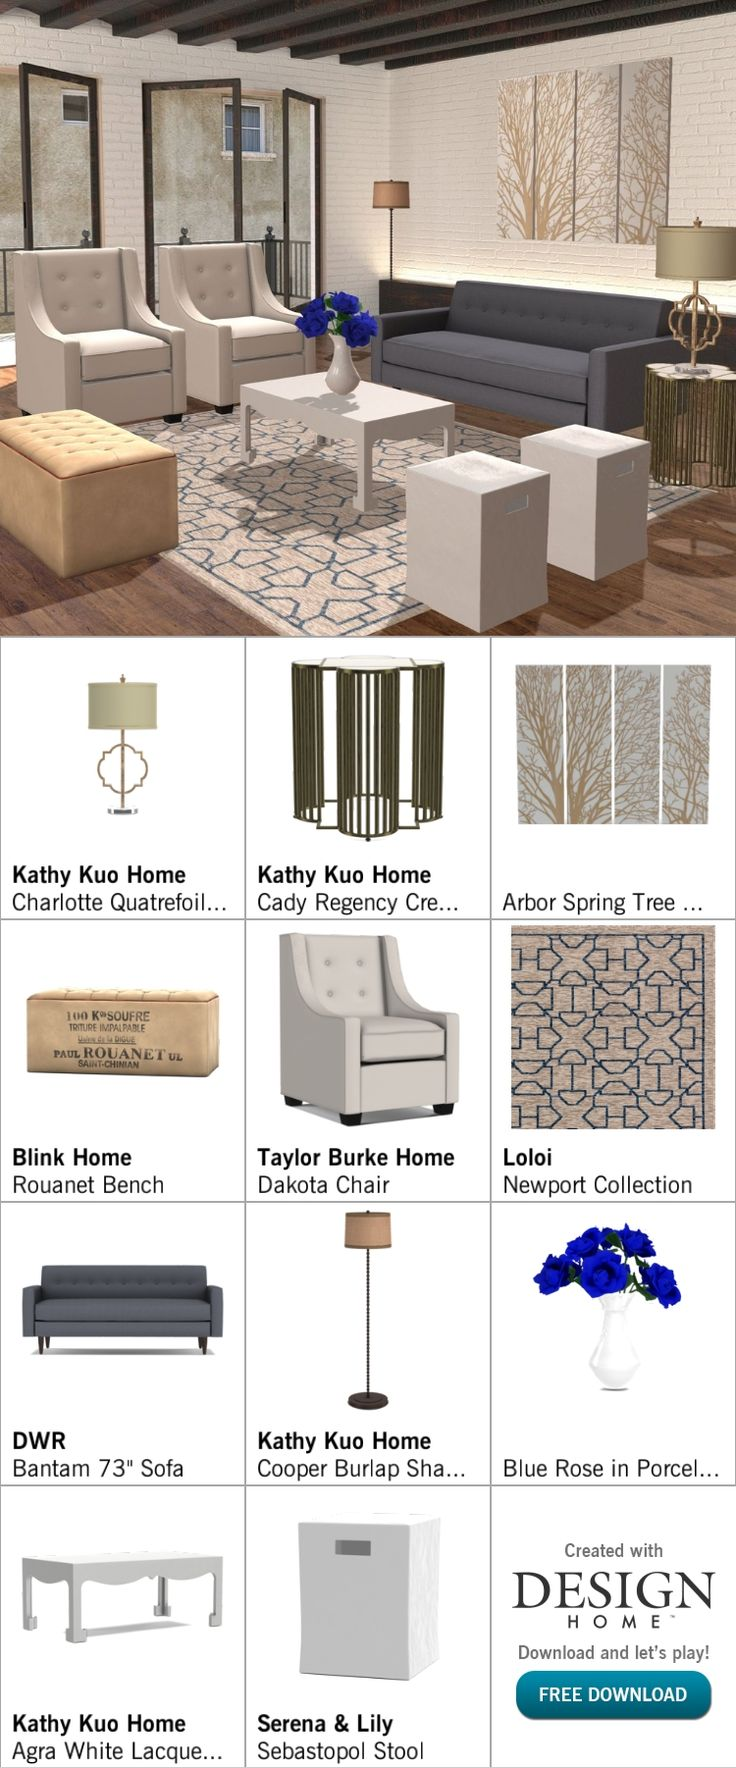 20 best Design Home App - Rooms images on Pinterest | App, Apps and ...